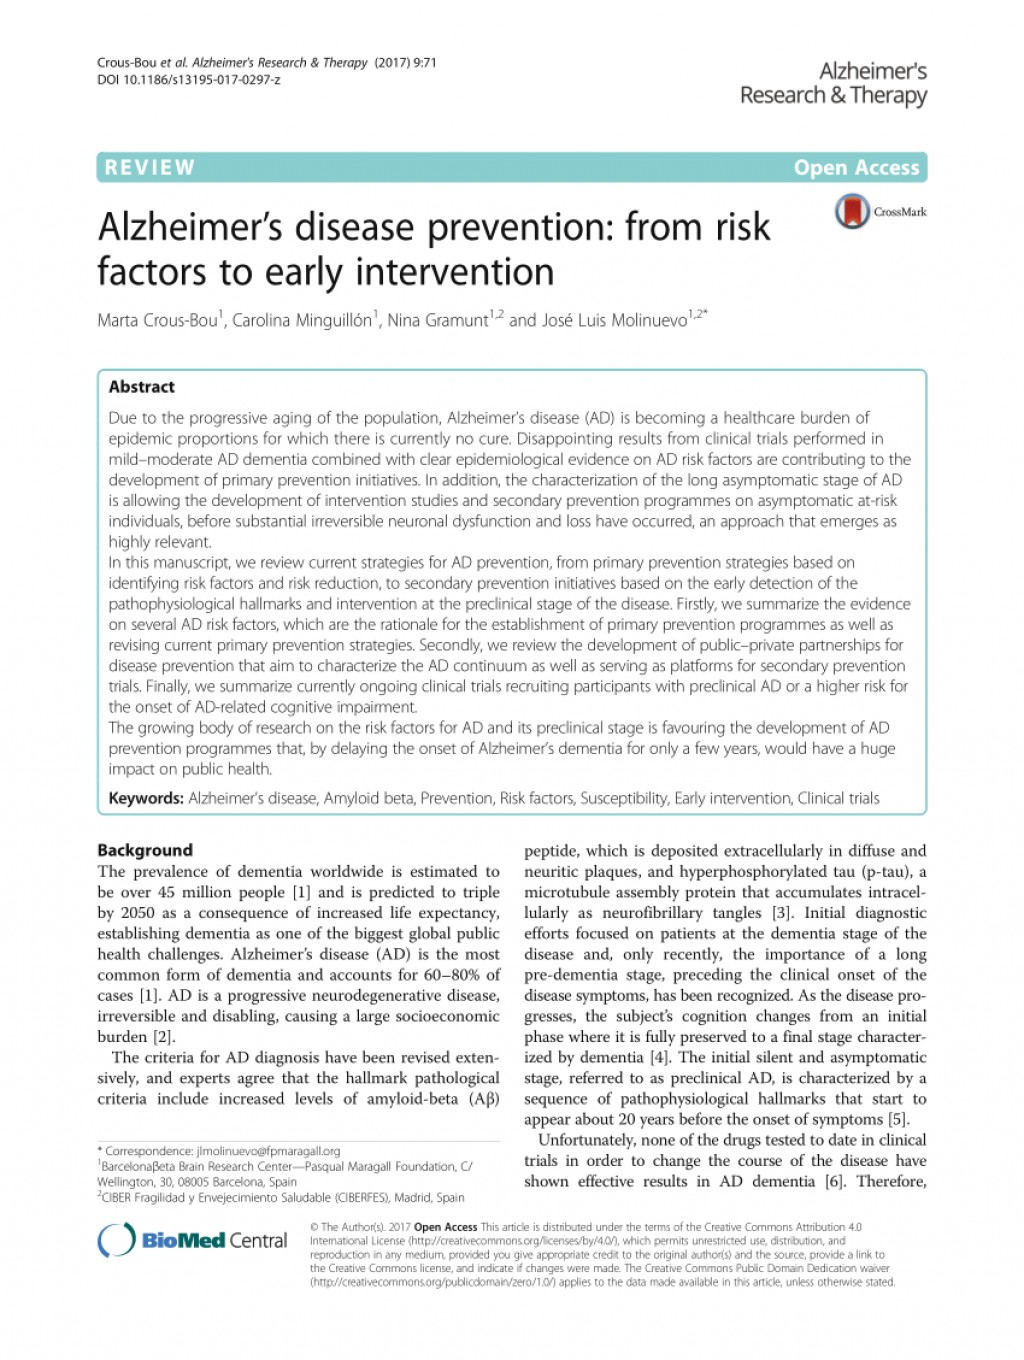 010 Alzheimers Research Paper Questions Formidable Alzheimer's Disease Topics Large